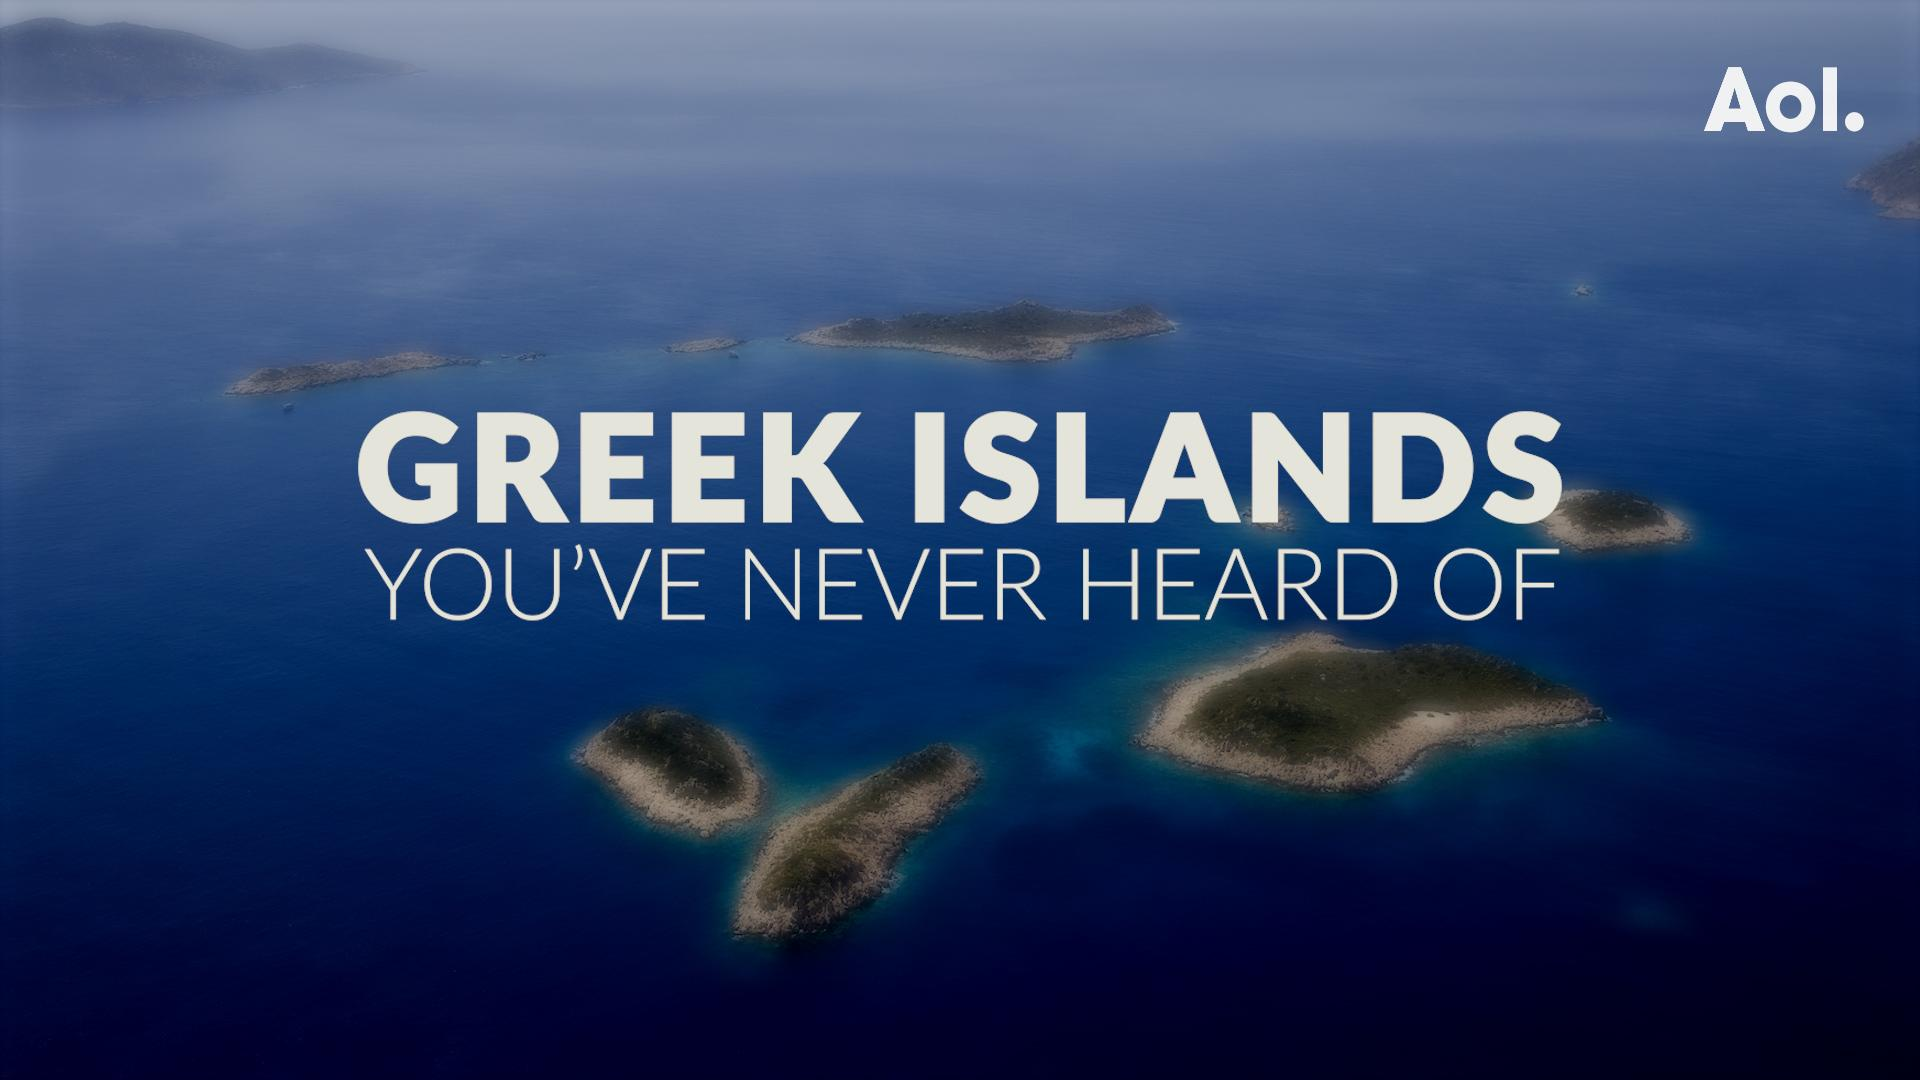 Greek Islands You've Never Heard Of